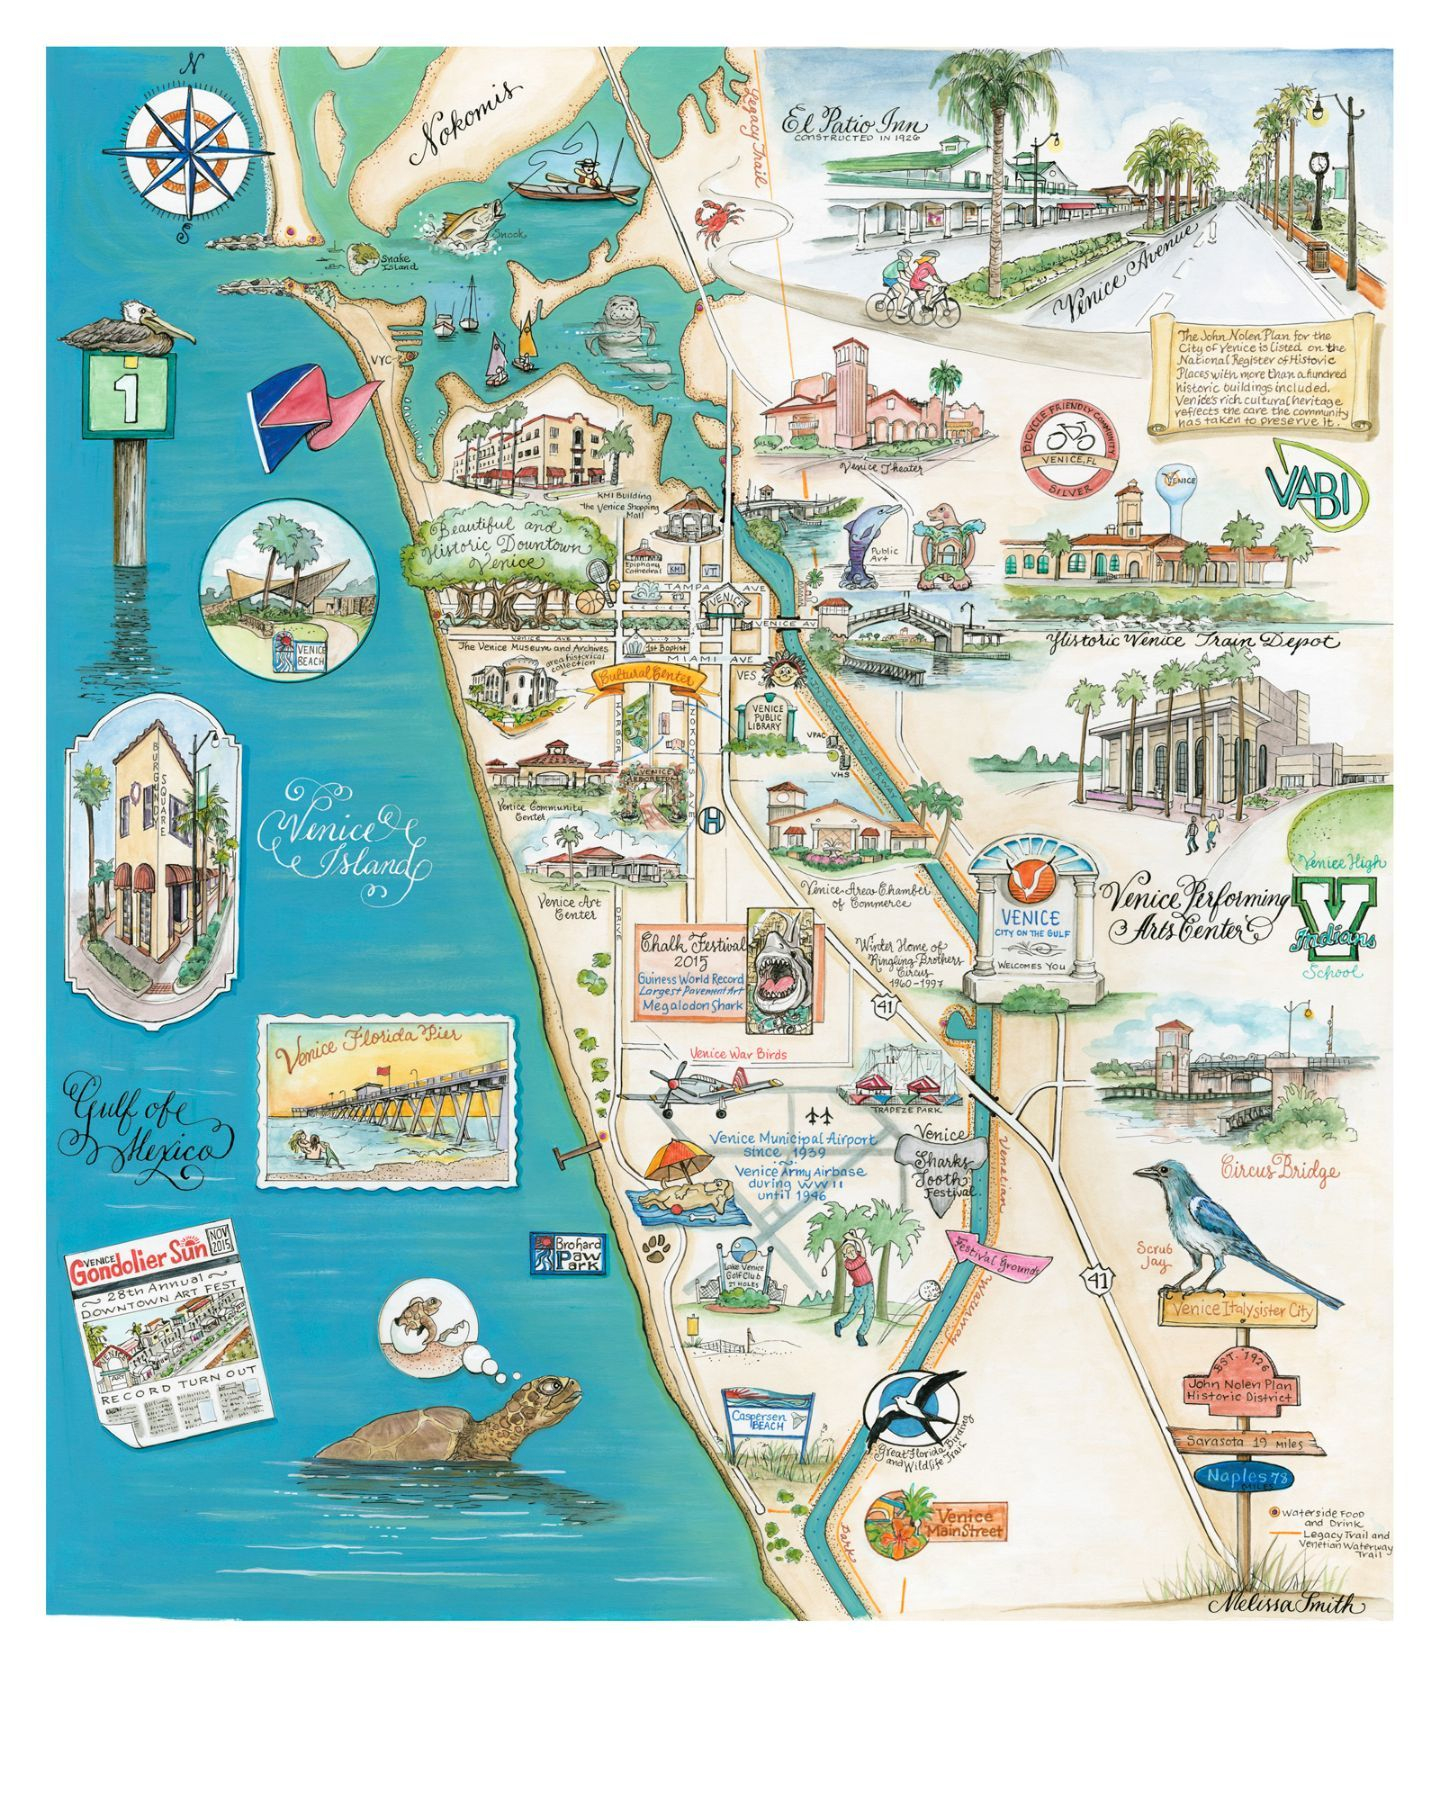 Venice, Florida Map - This Map Is One Of The Prettiest Maps I Have - Map Of South Venice Florida